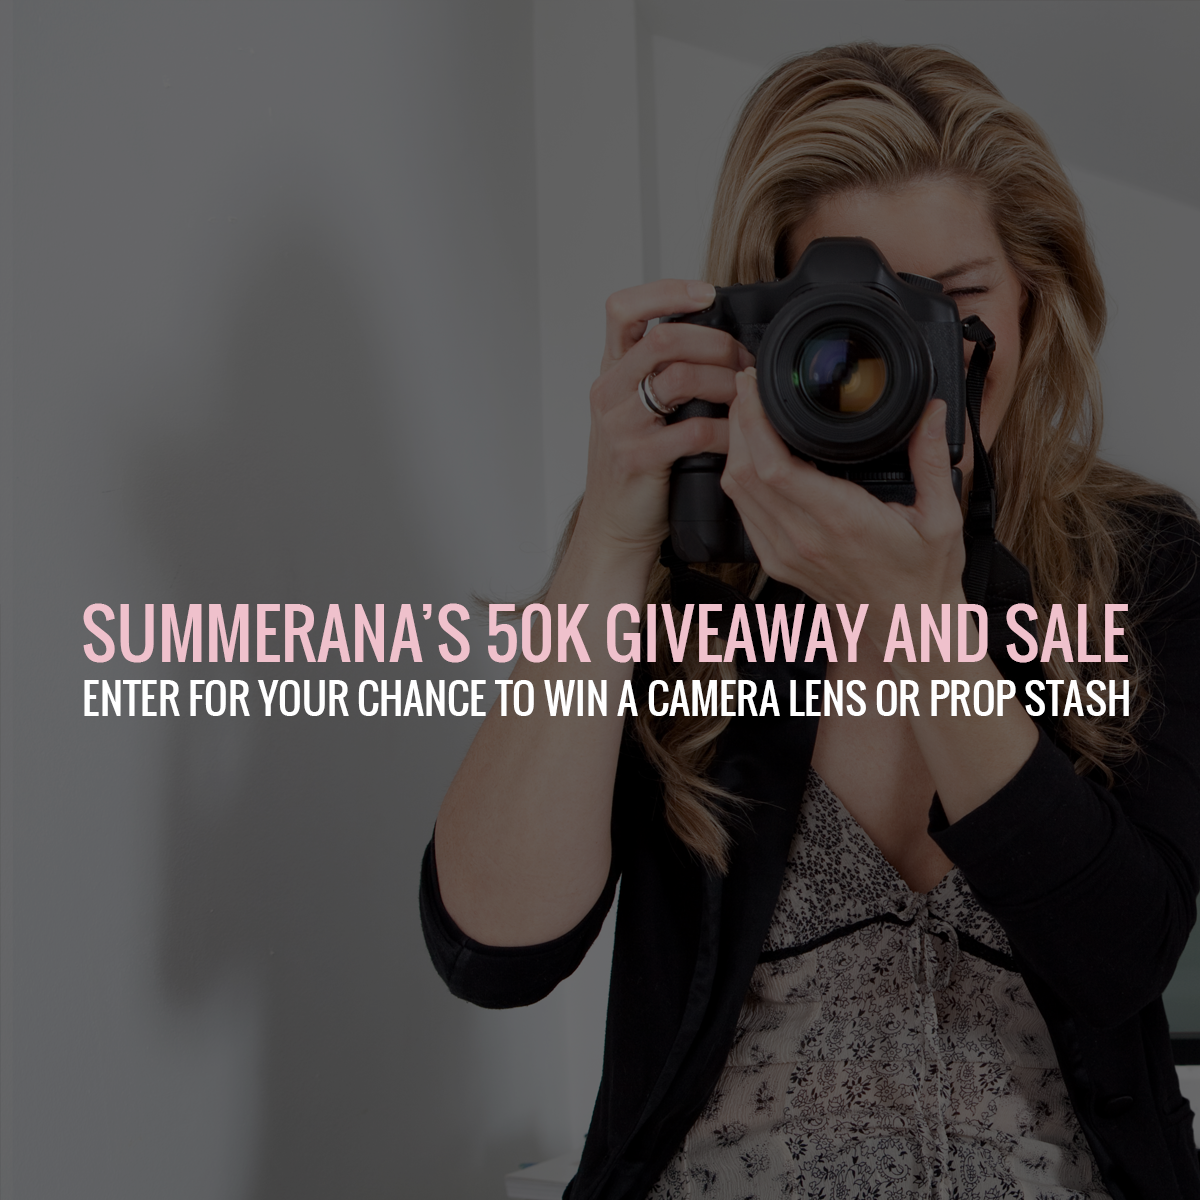 summerana-photoshop-actions-for-photographers-giveaway-lens-blog